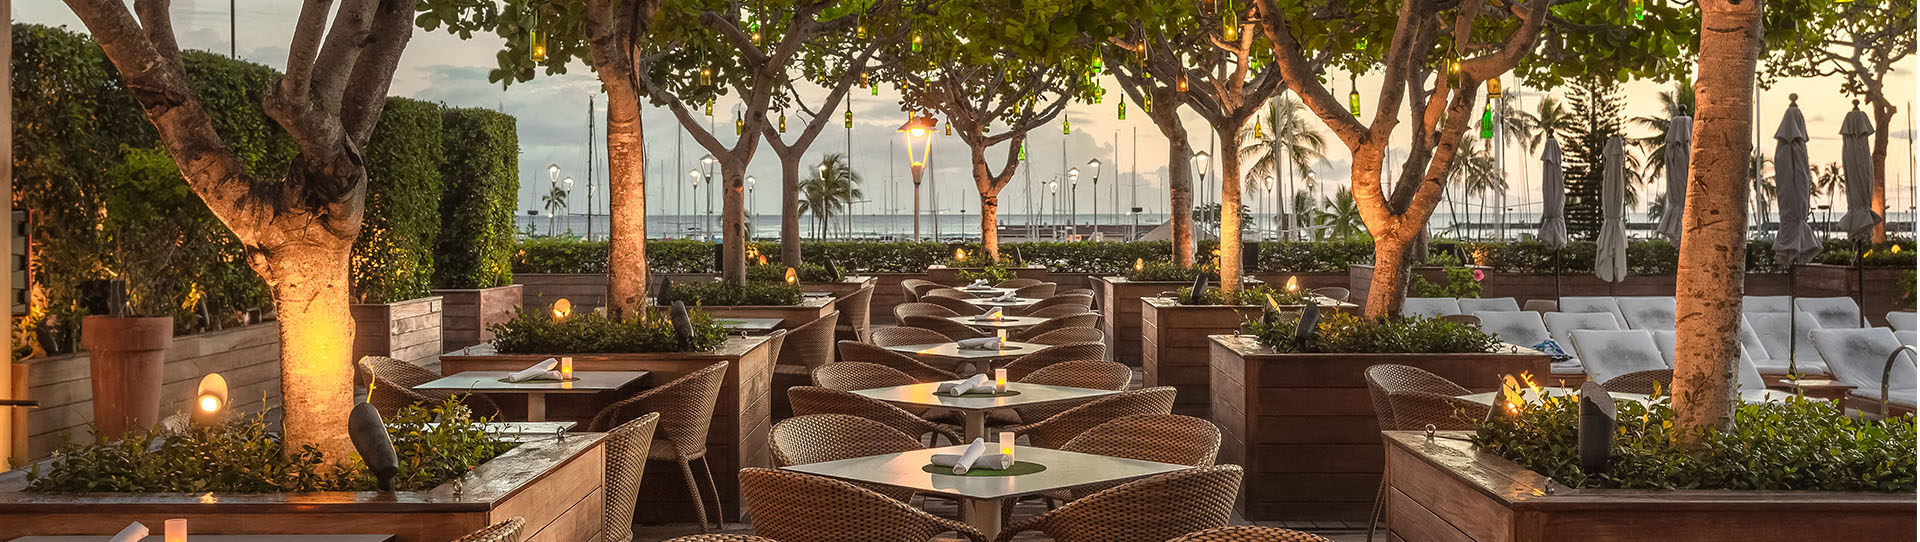 Best Restaurants Honolulu